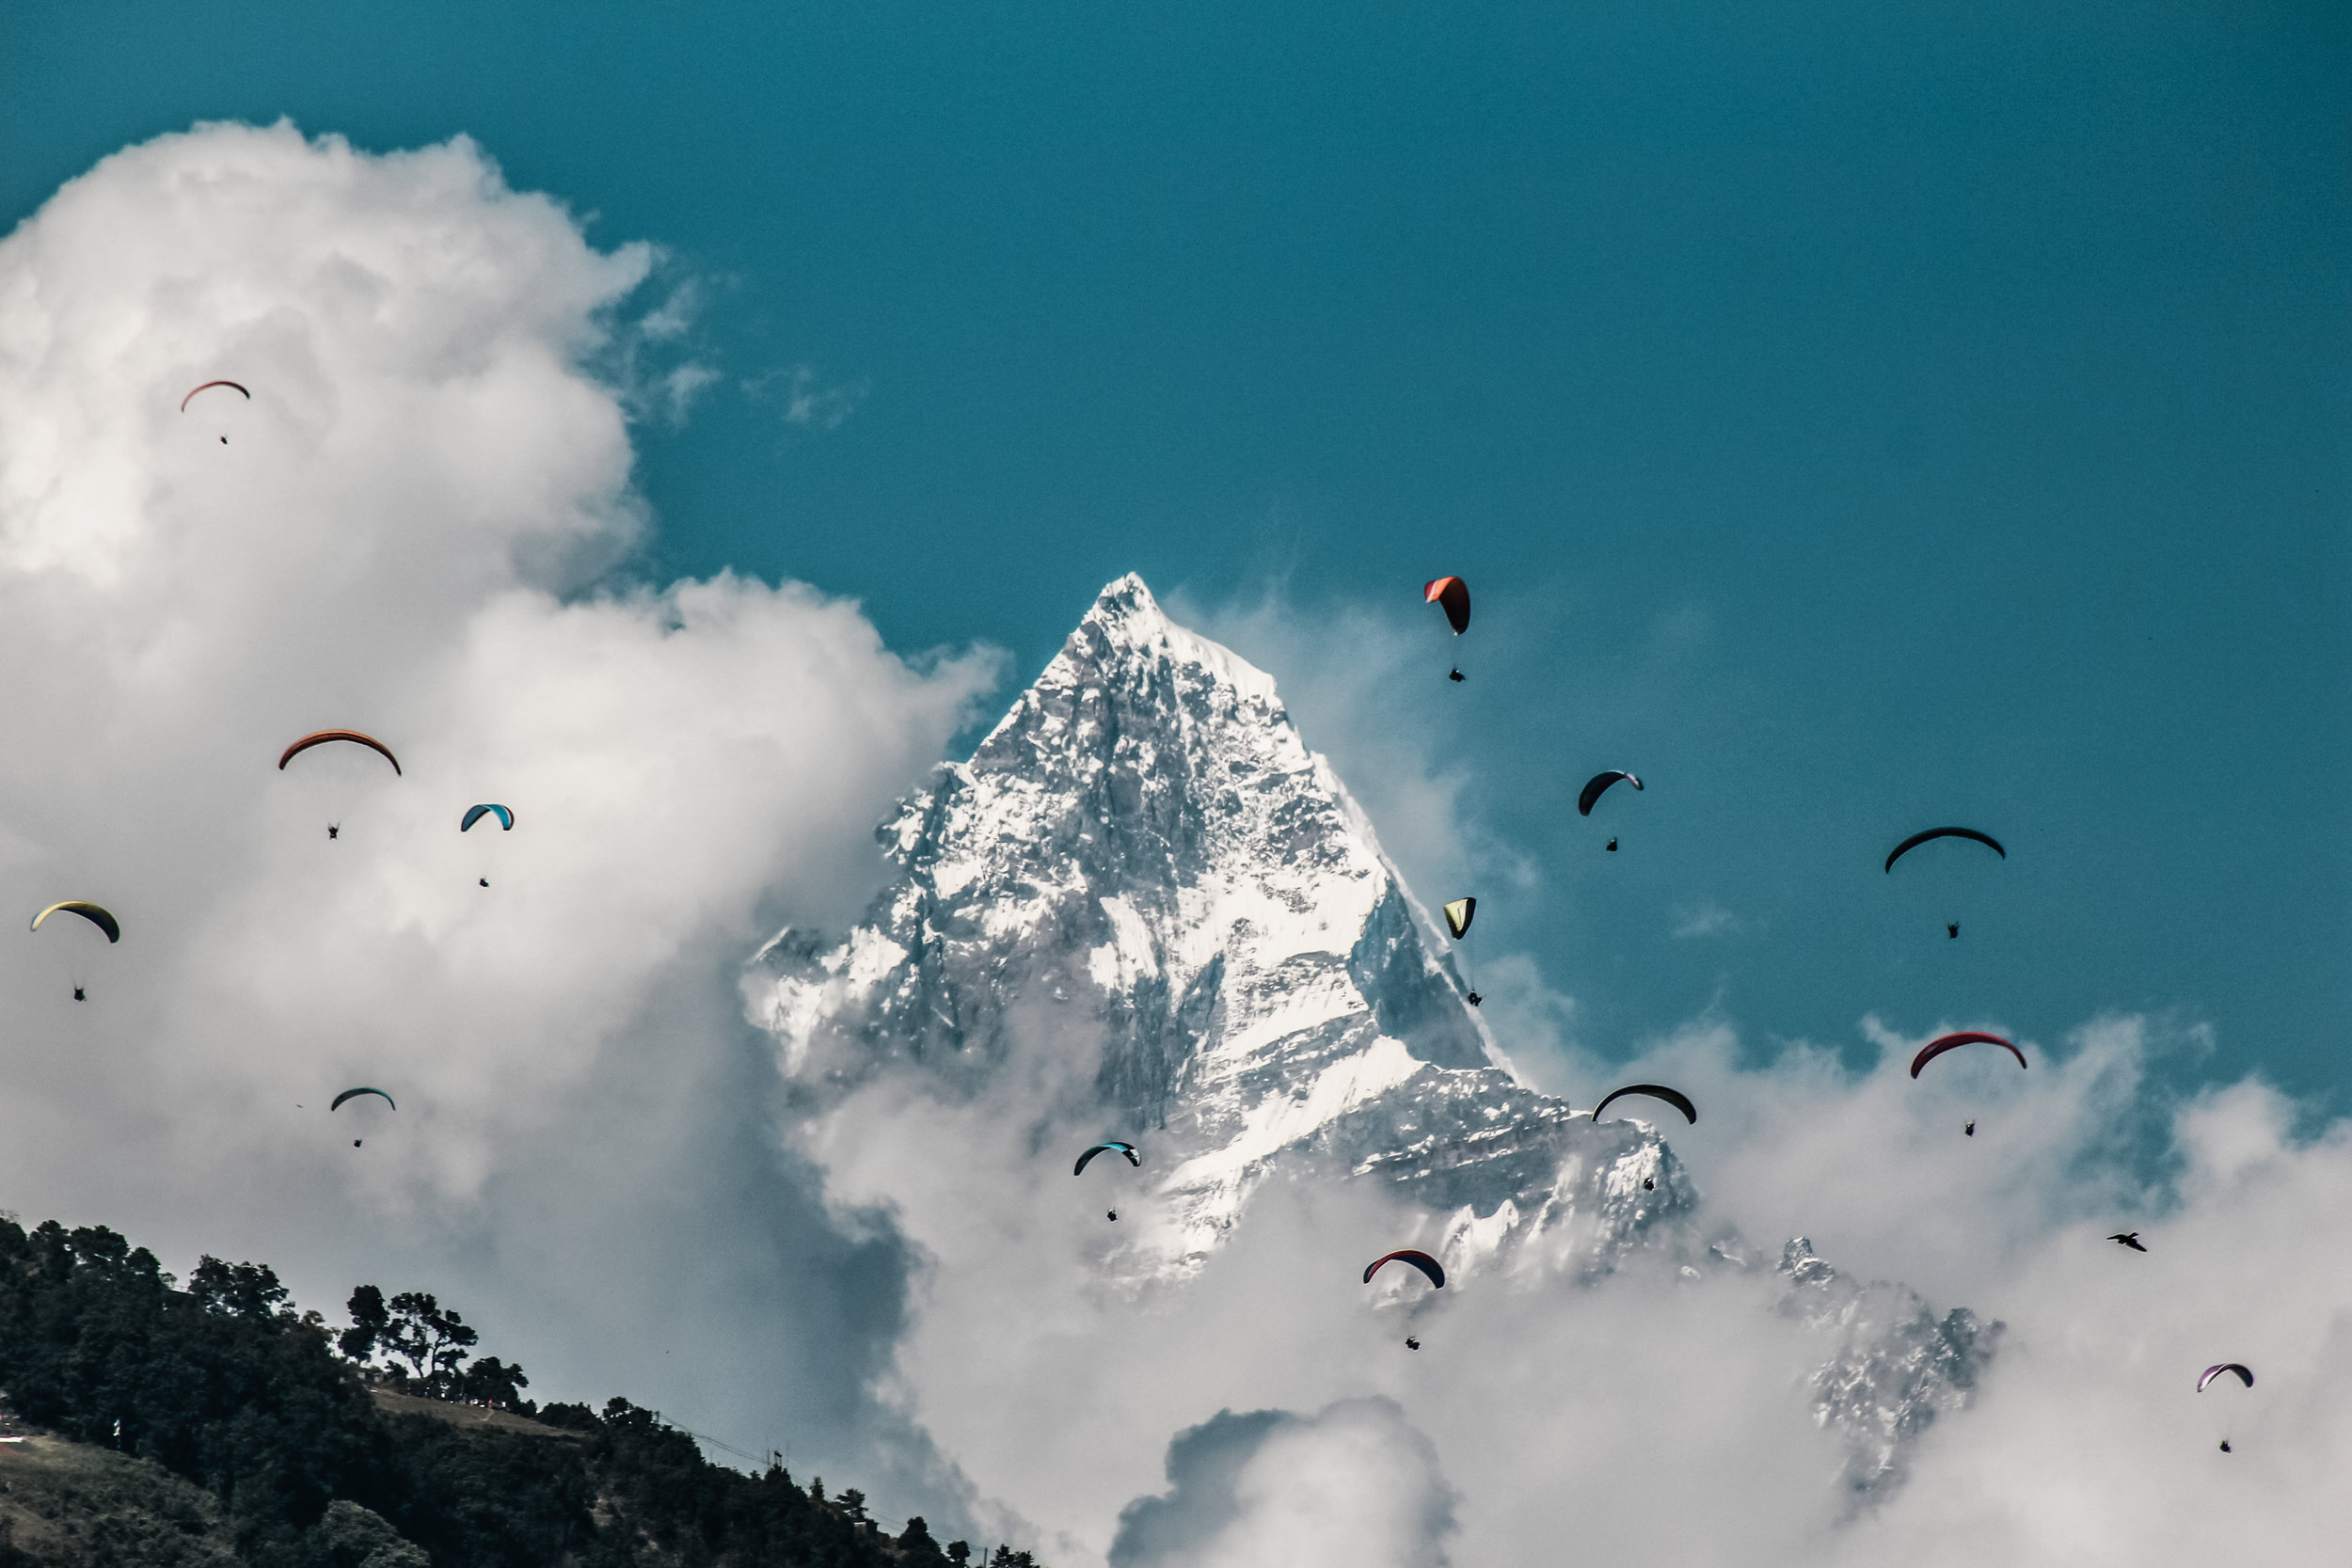 Hang gliders in Pokhara, Nepal